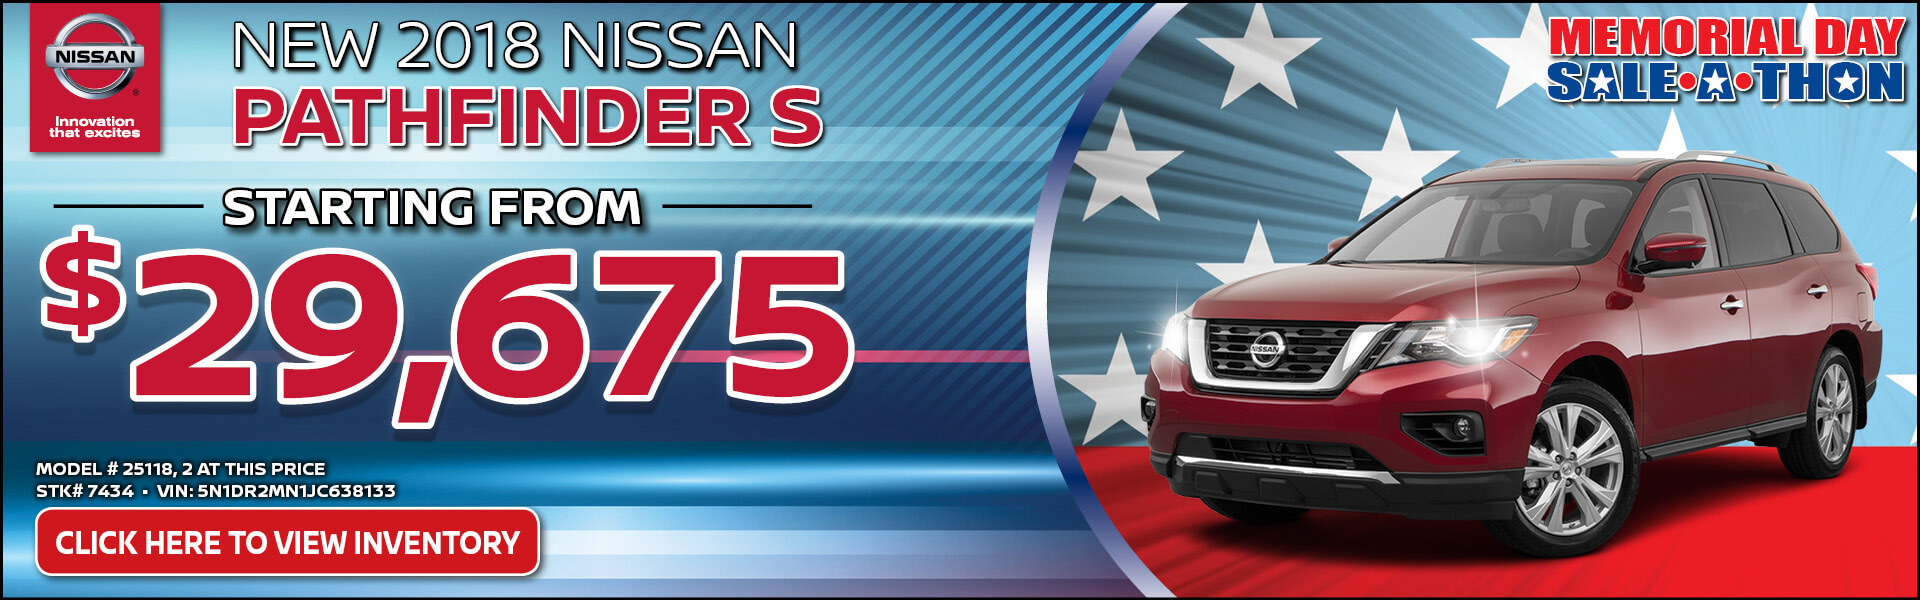 Nissan Pathfinder $29,675 Purchase